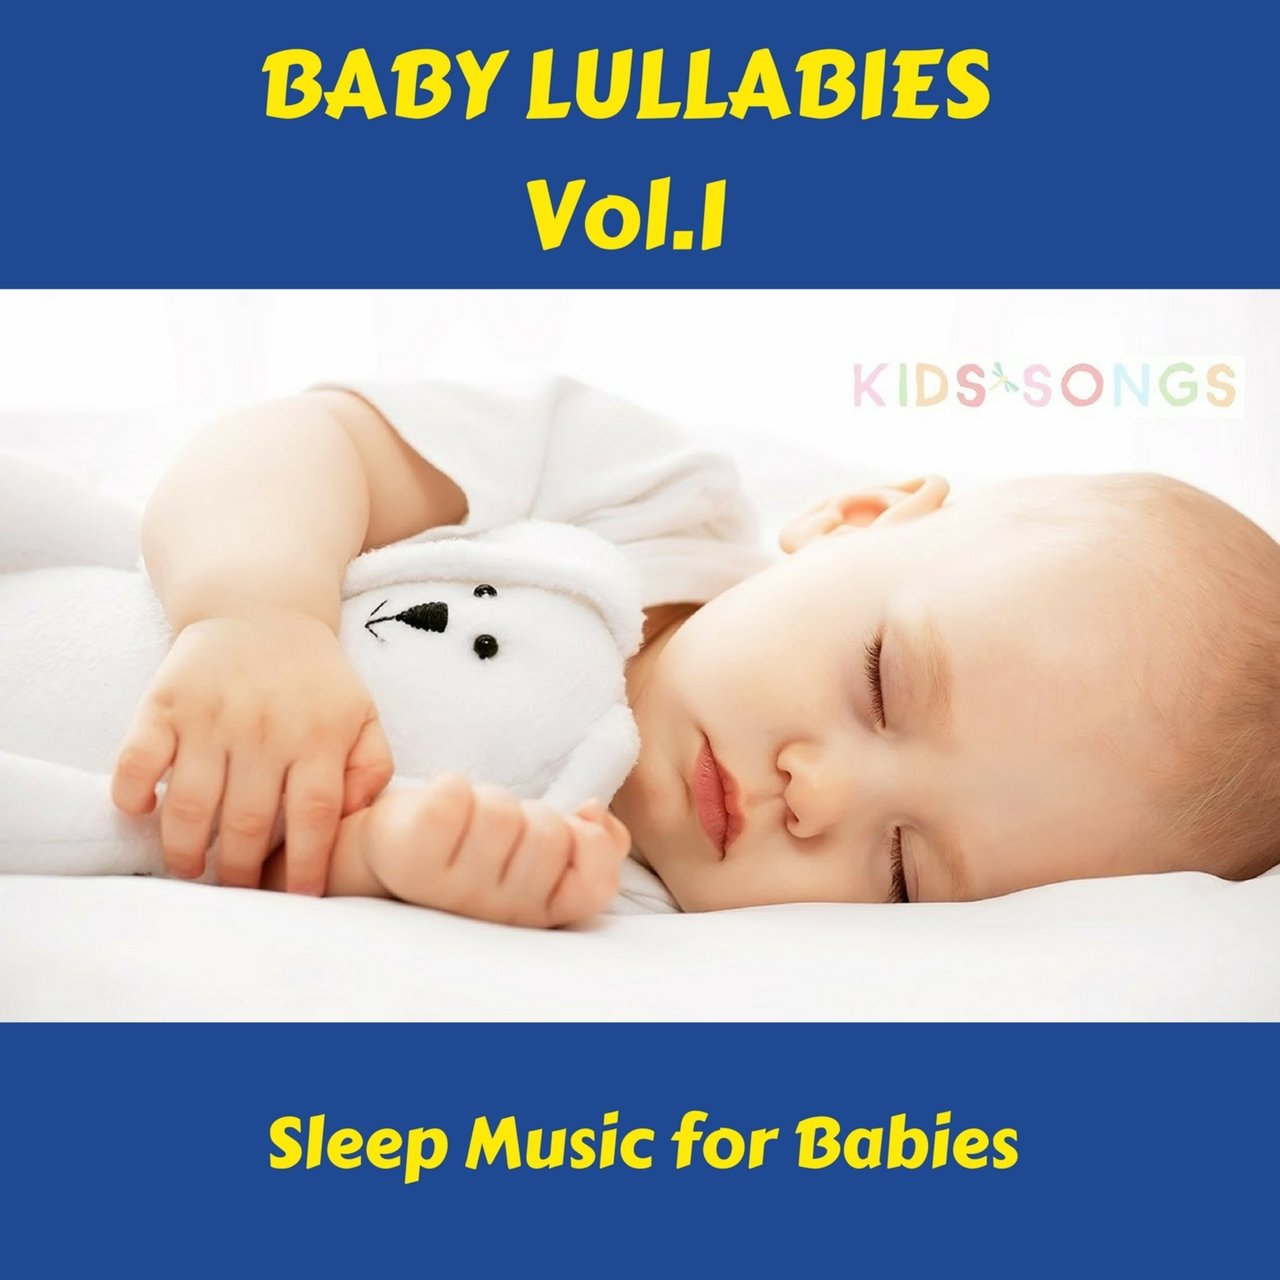 Sleep Music For Kids Listen To Baby Lullabies Vol 1 Sleep Music For Babies By Dan